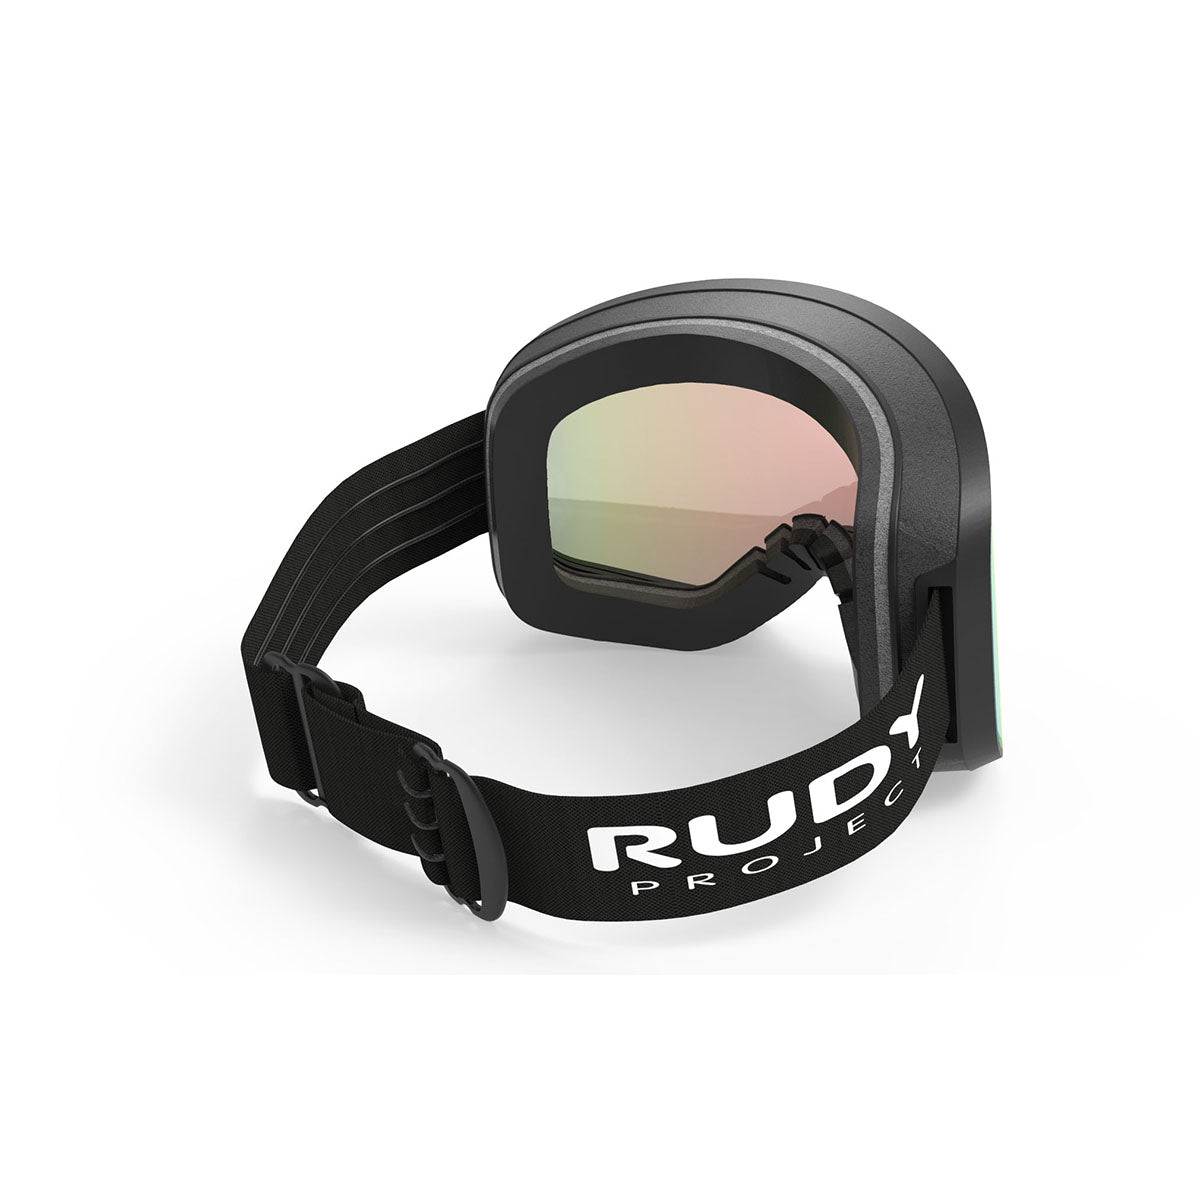 Rudy Project - Skermo - frame color: Black Matte - lens color: Multilaser Orange - Light Transmission: 22 Percent - photo angle: Top Back Angle Variant Hover Image